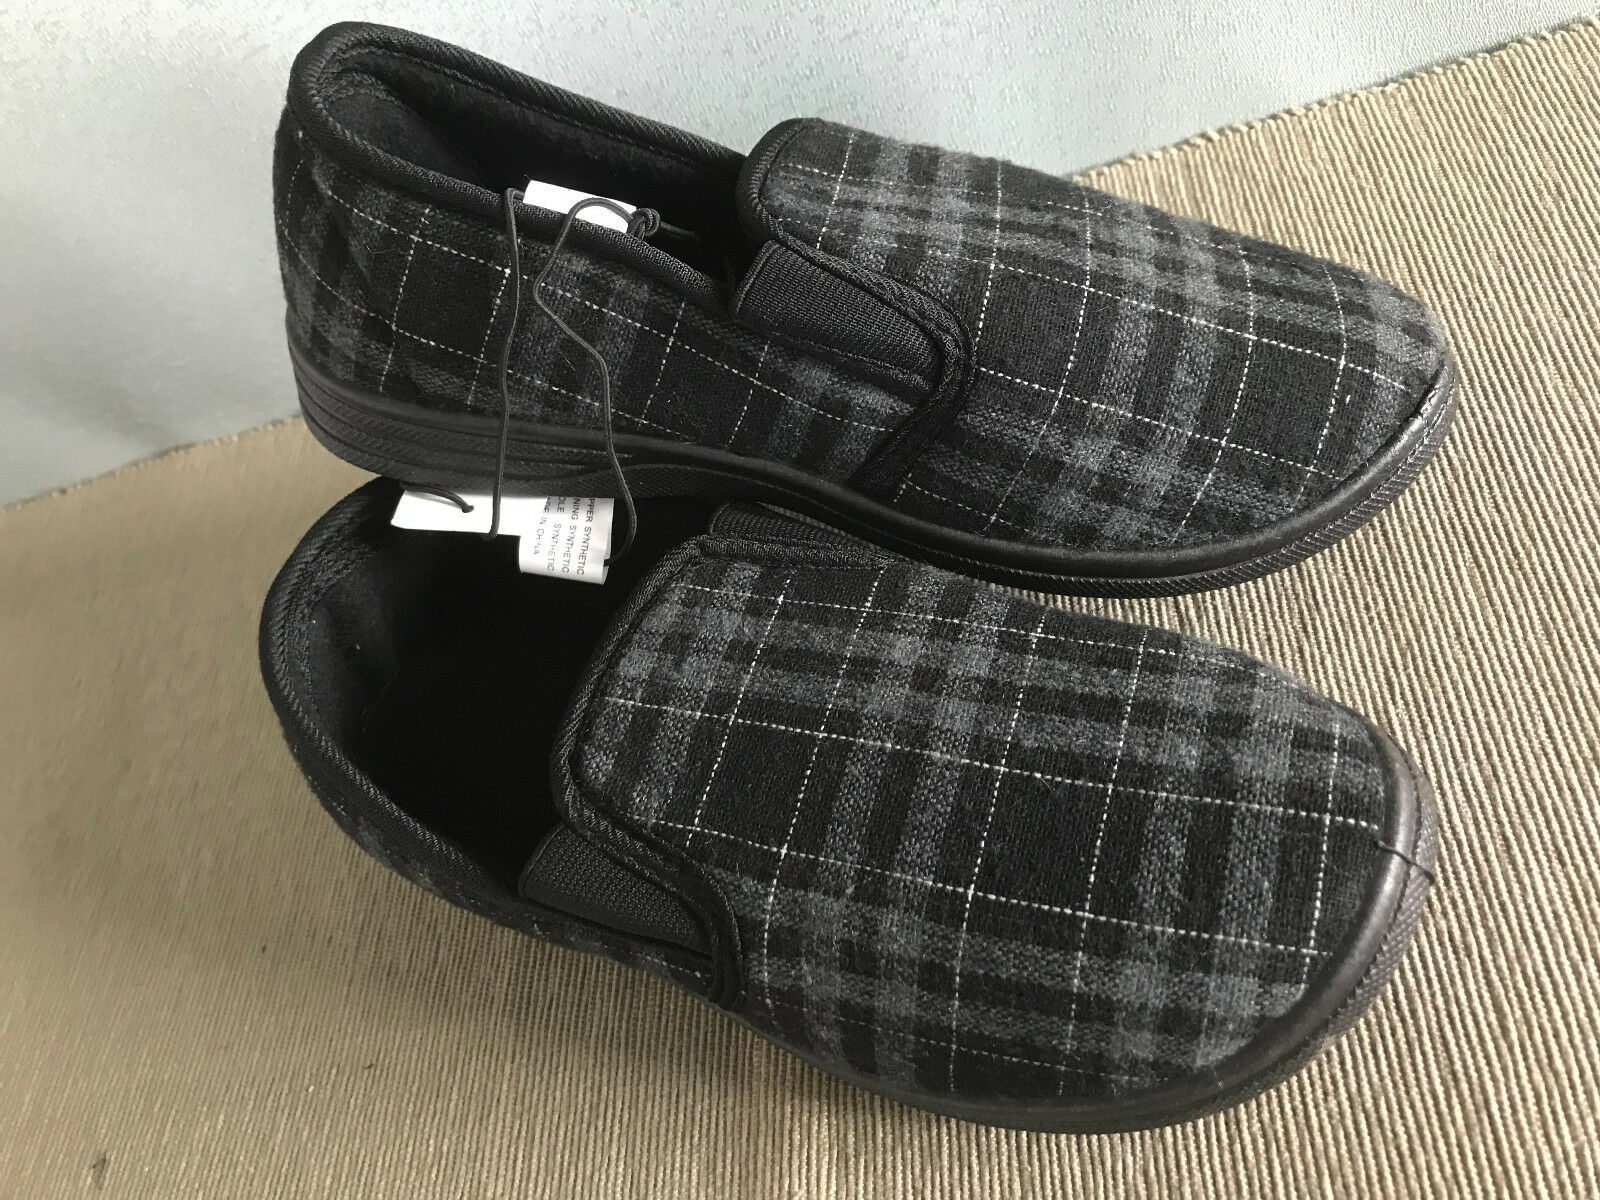 BNWT Mens Size AUS 10 Smart Checked Comfy Fabric Slippers in Navy Blue or Grey